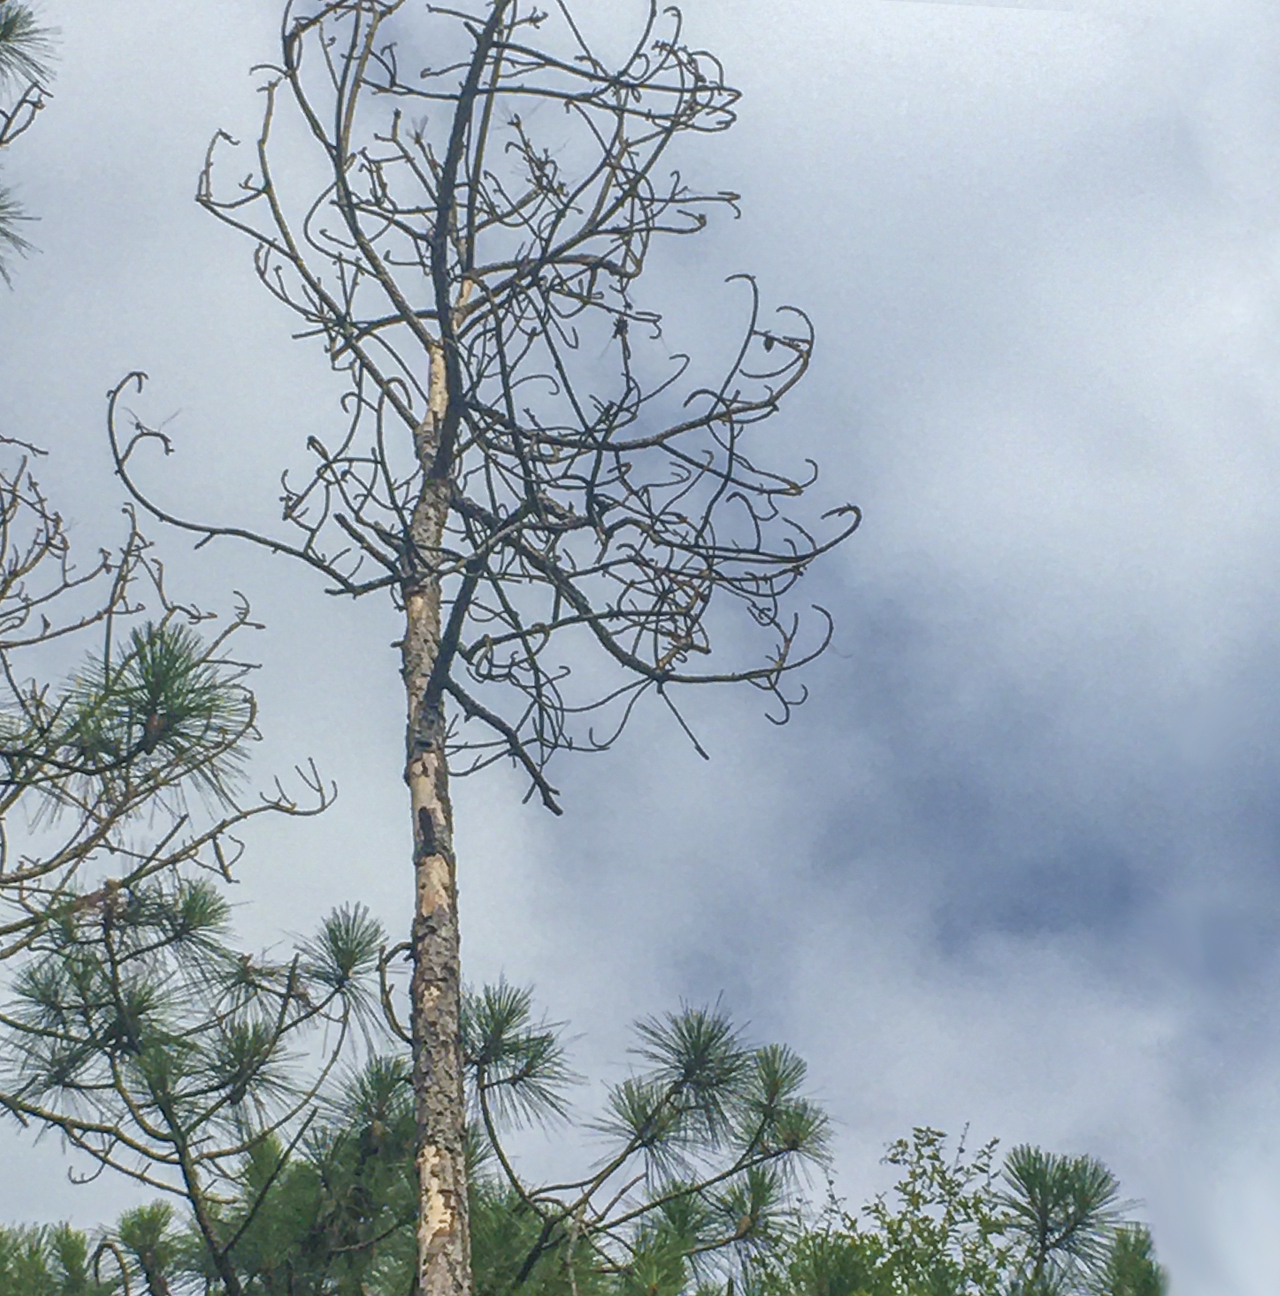 This pine near Lake Talquin began browning a few months after Hurricane Michael and is now completely dead. Removing dead and declining pines is important, because they can be an attractant to pine beetles.